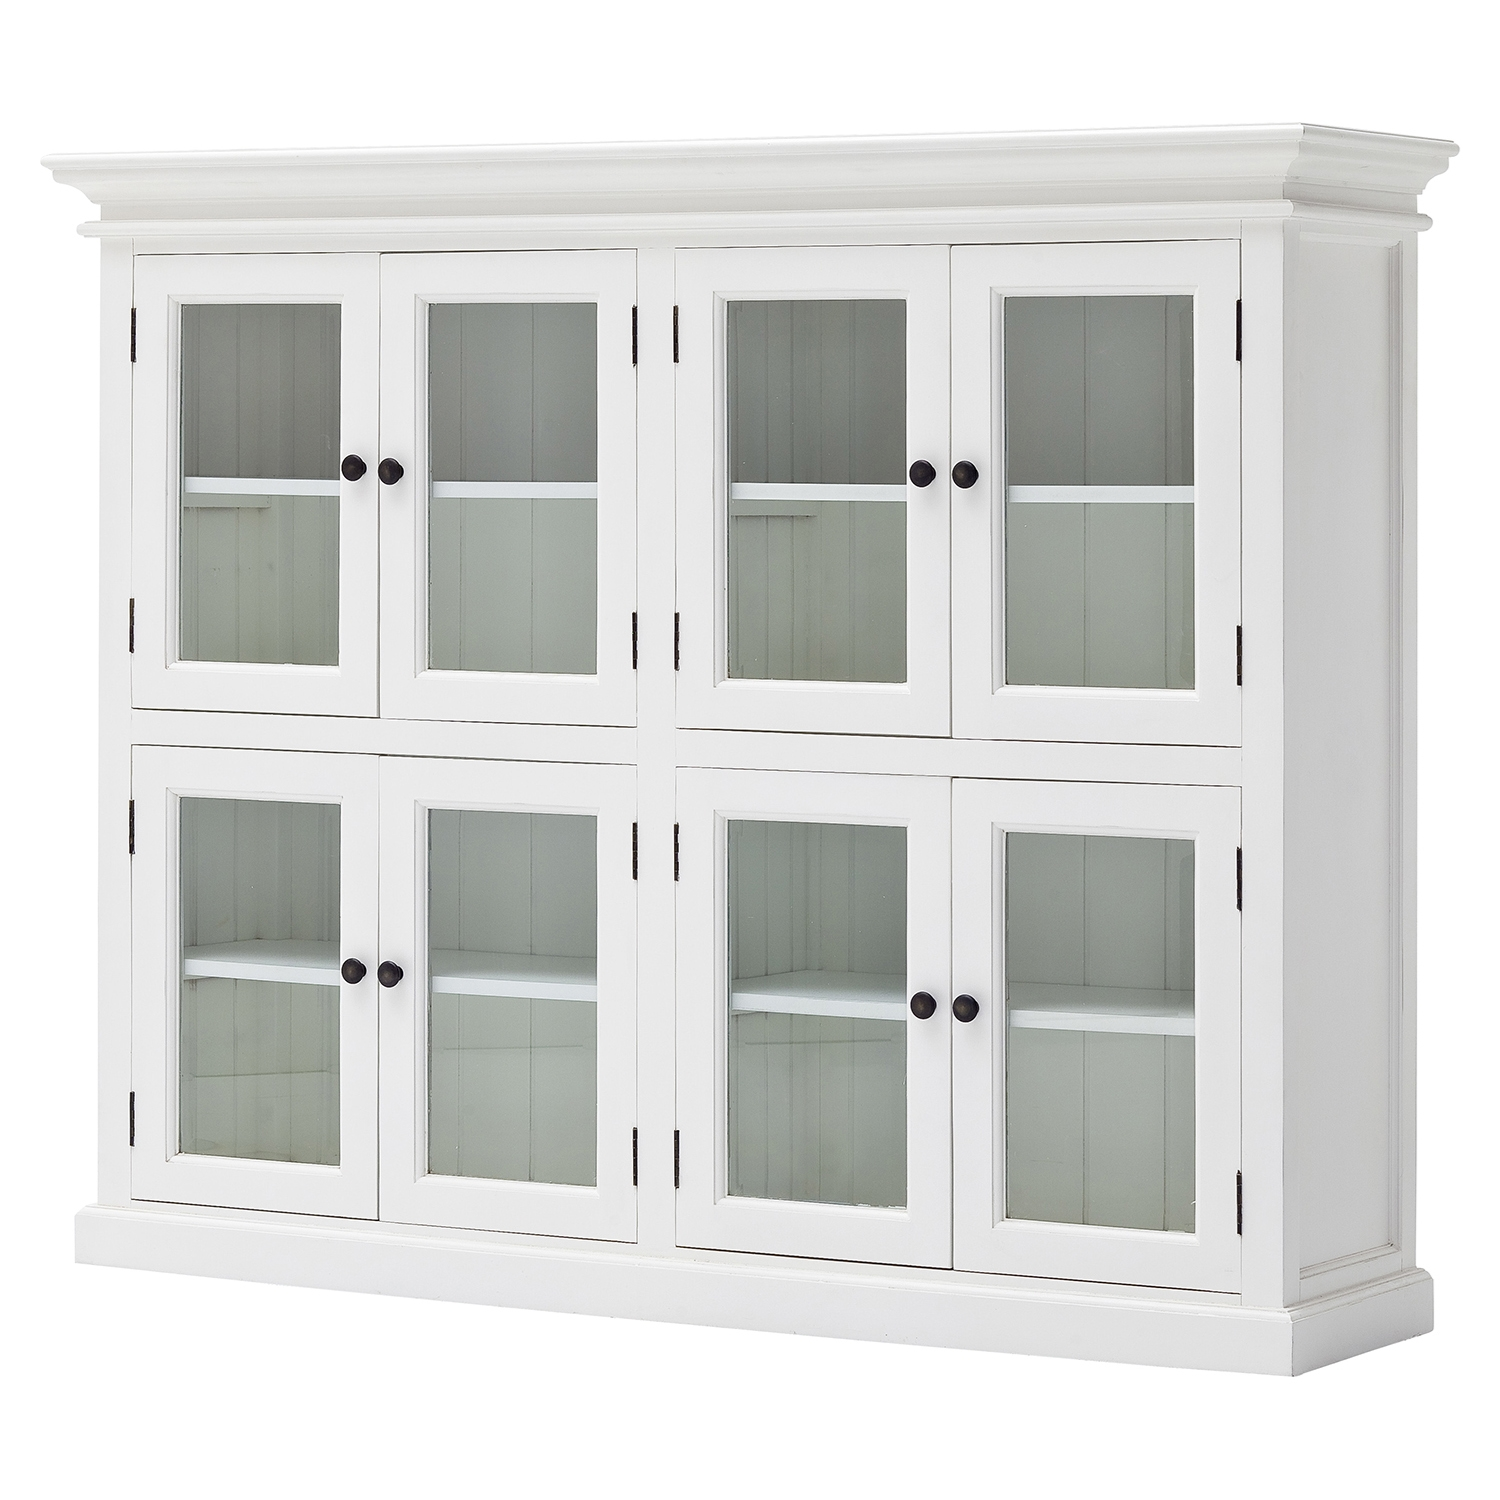 Halifax Pantry 8 Doors - Pure White - NSOLO-CA615